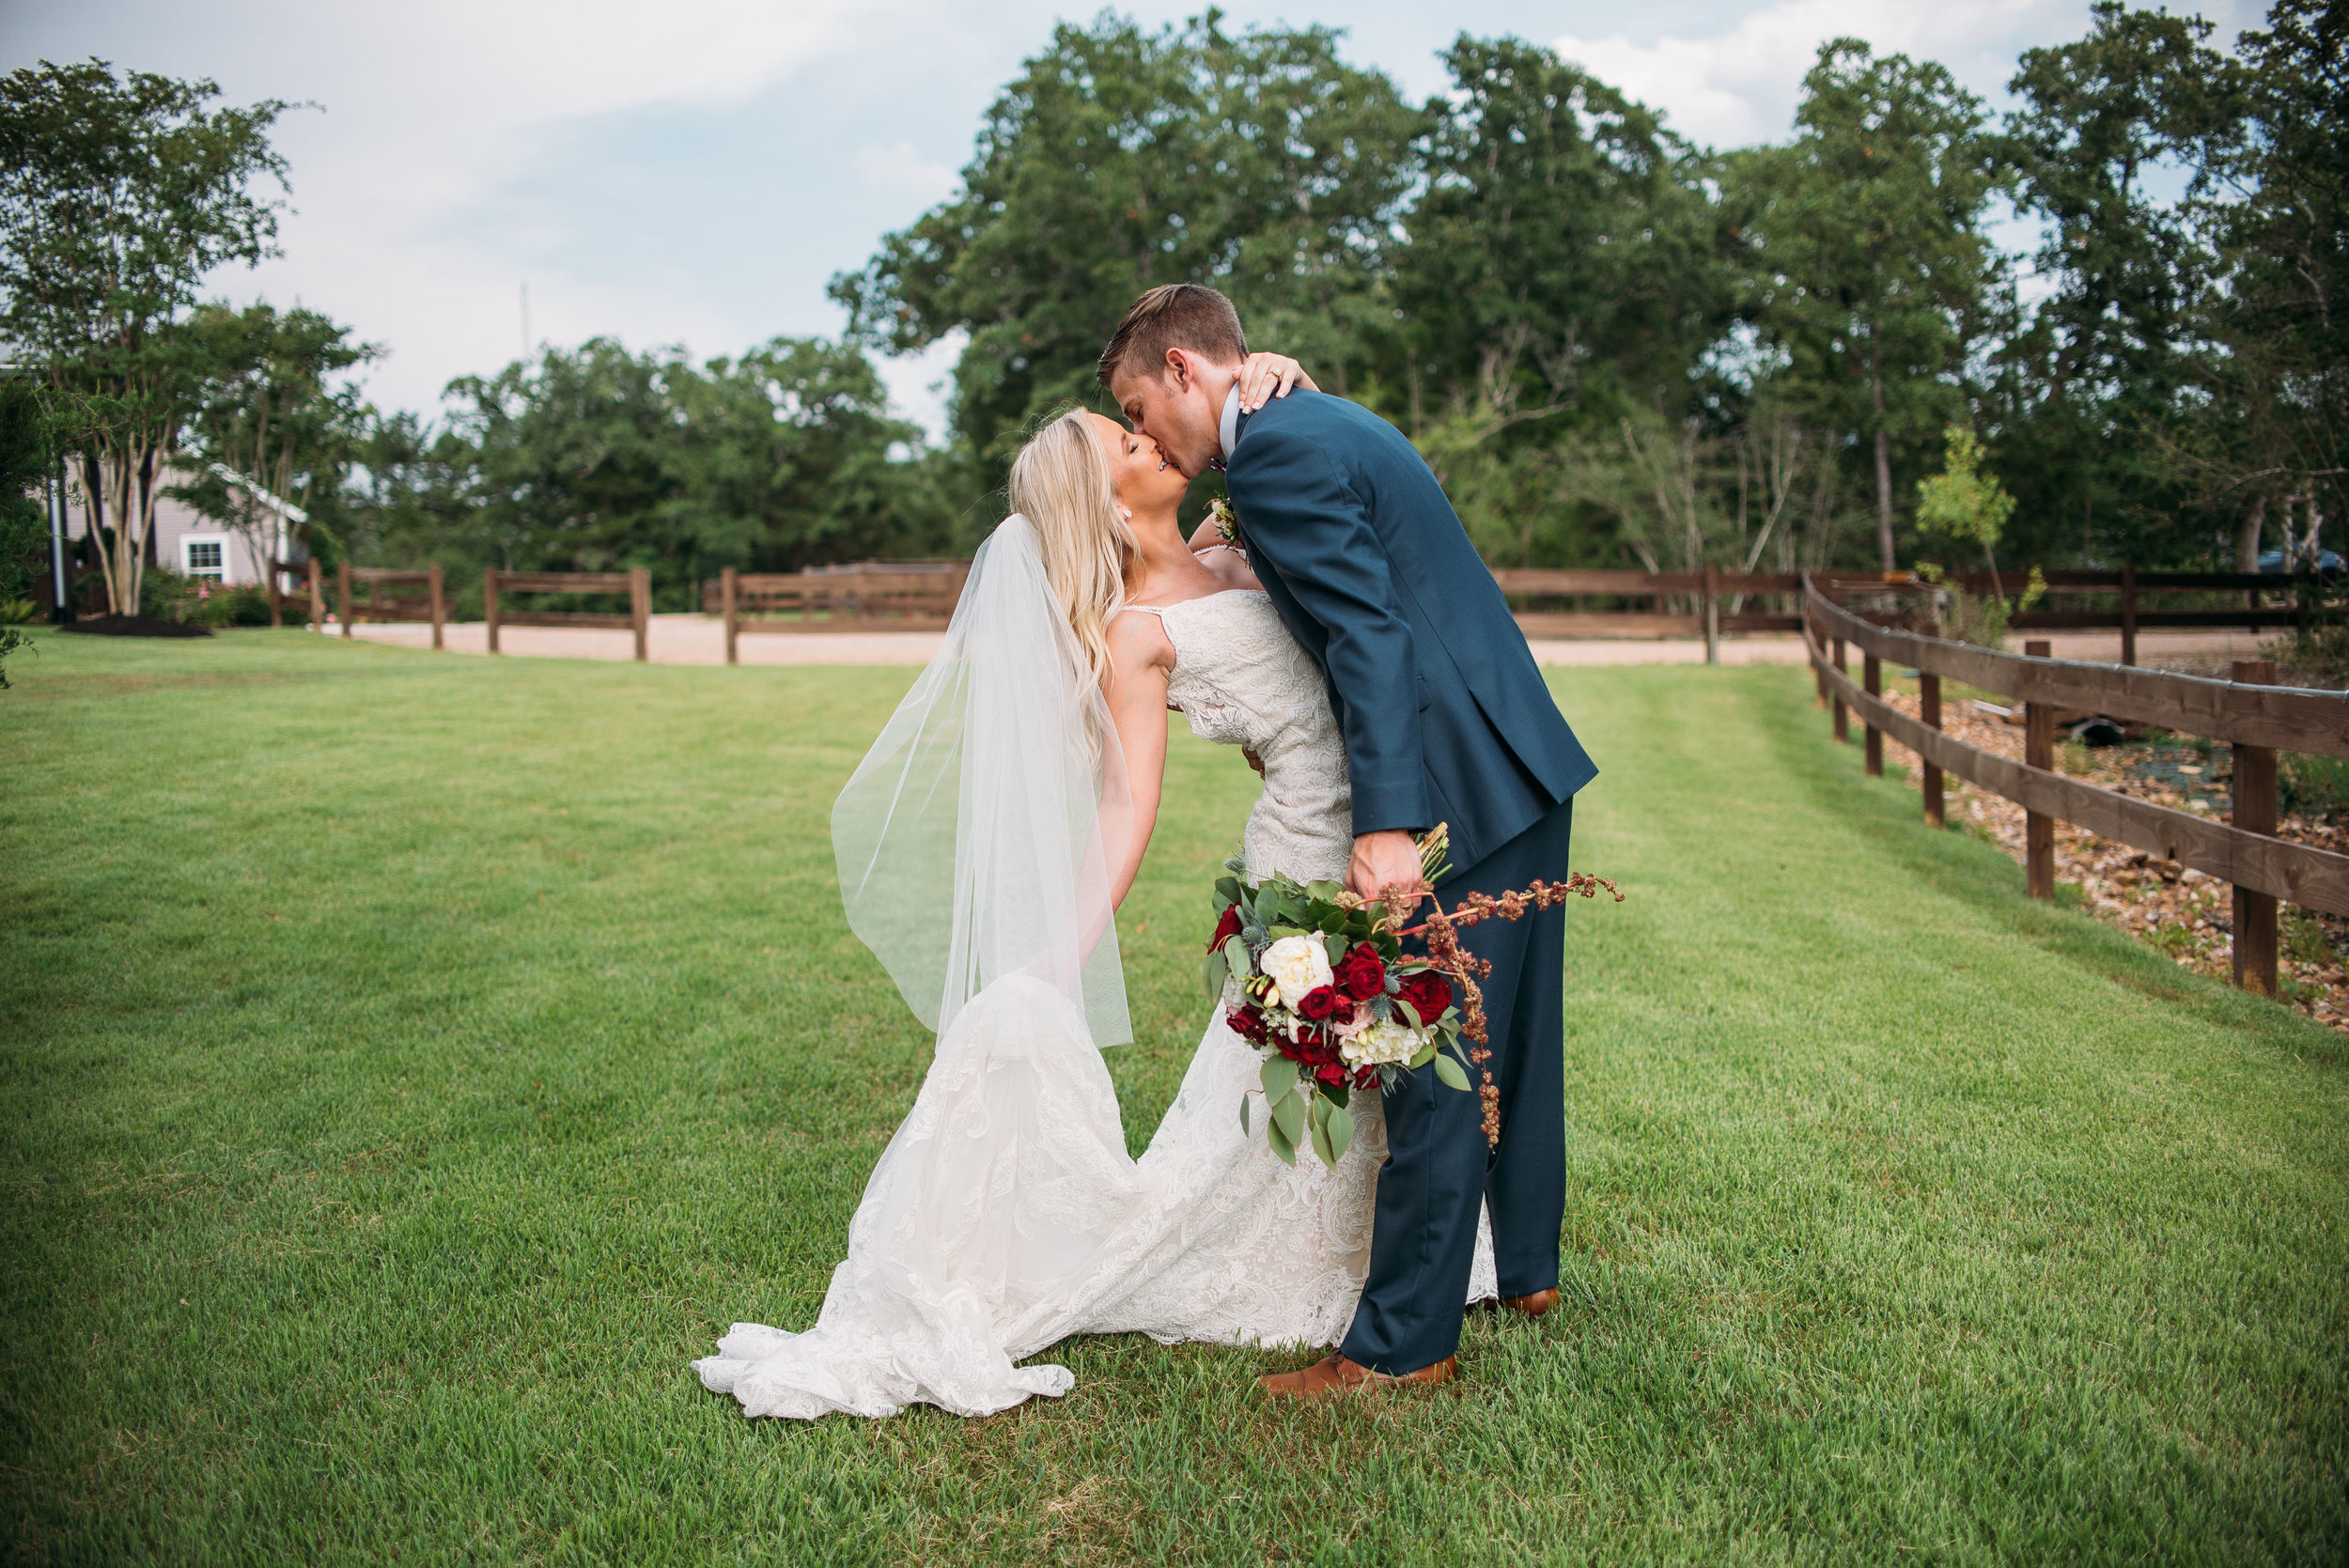 EmilyCody-Peach-Creek-Ranch-Wedding-Ceremony-Bridals-Engagement-College-Station-Photographer-Videographer-San-Angel-Photo-0194.jpg